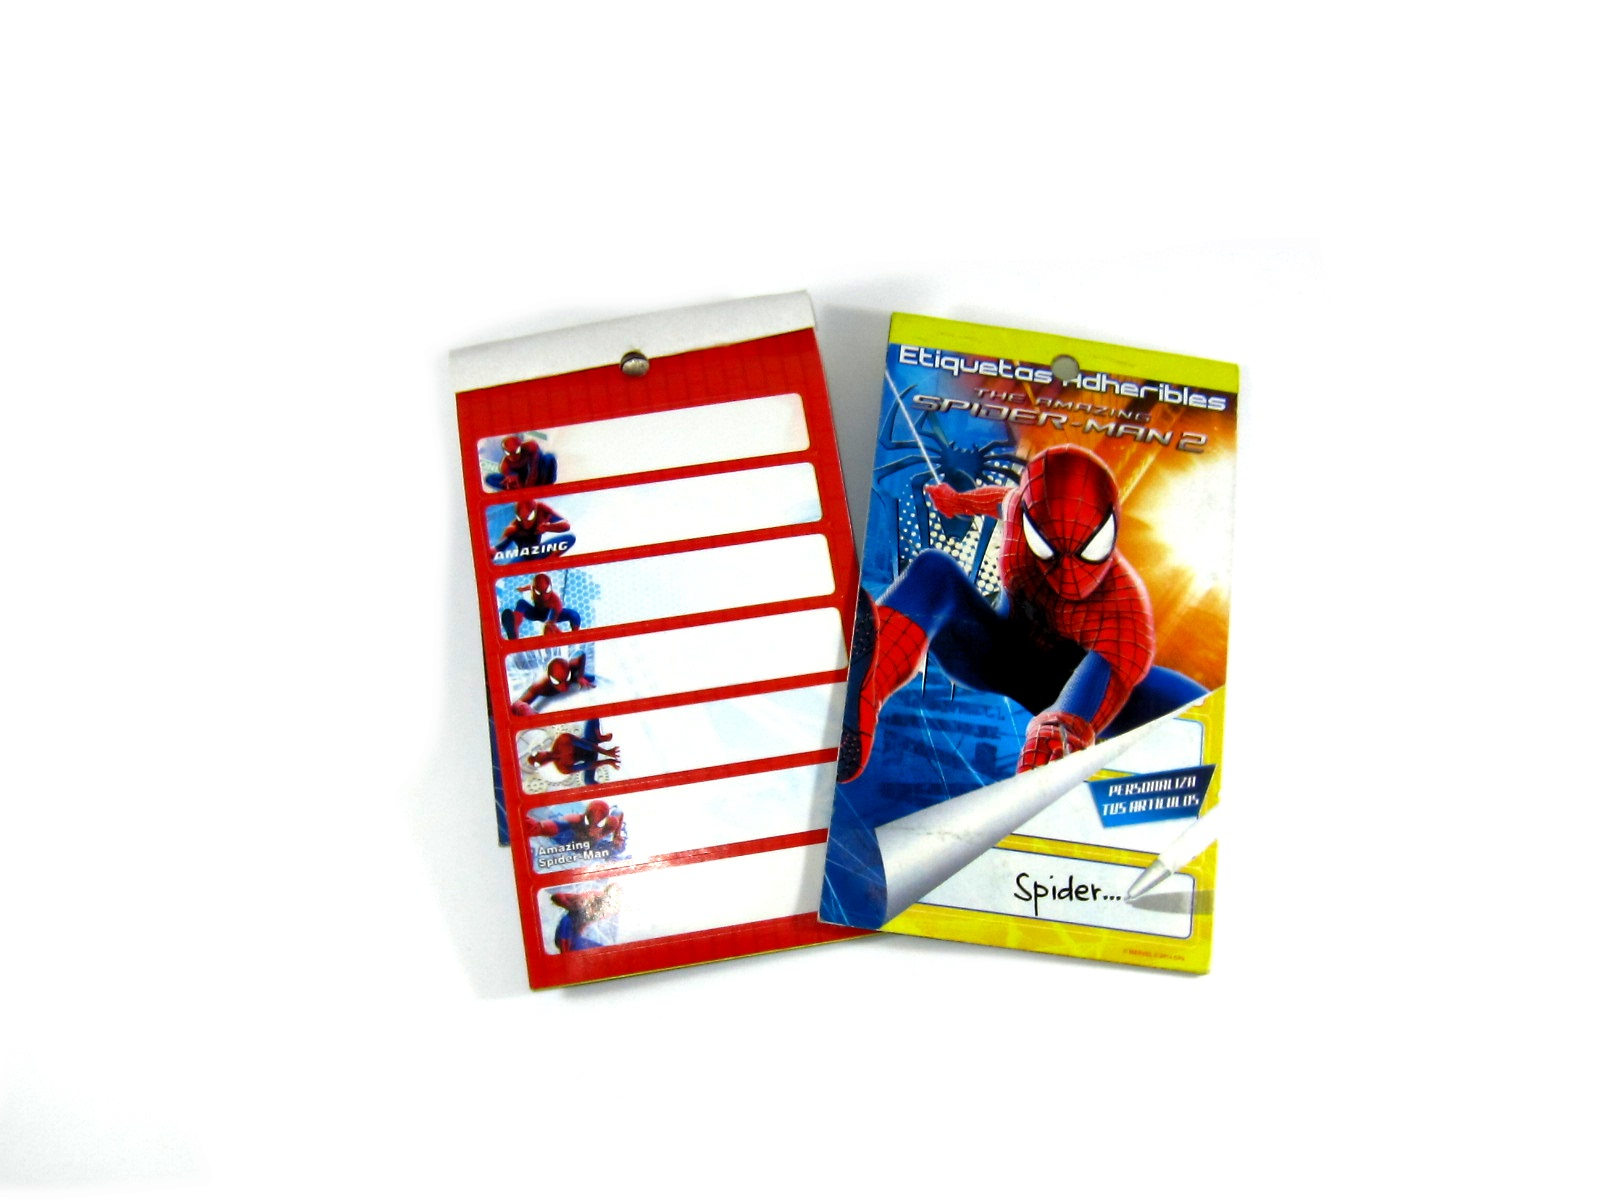 BLOCK ETIQUETA ADHERIBLE SPIDERMAN GRANMARK